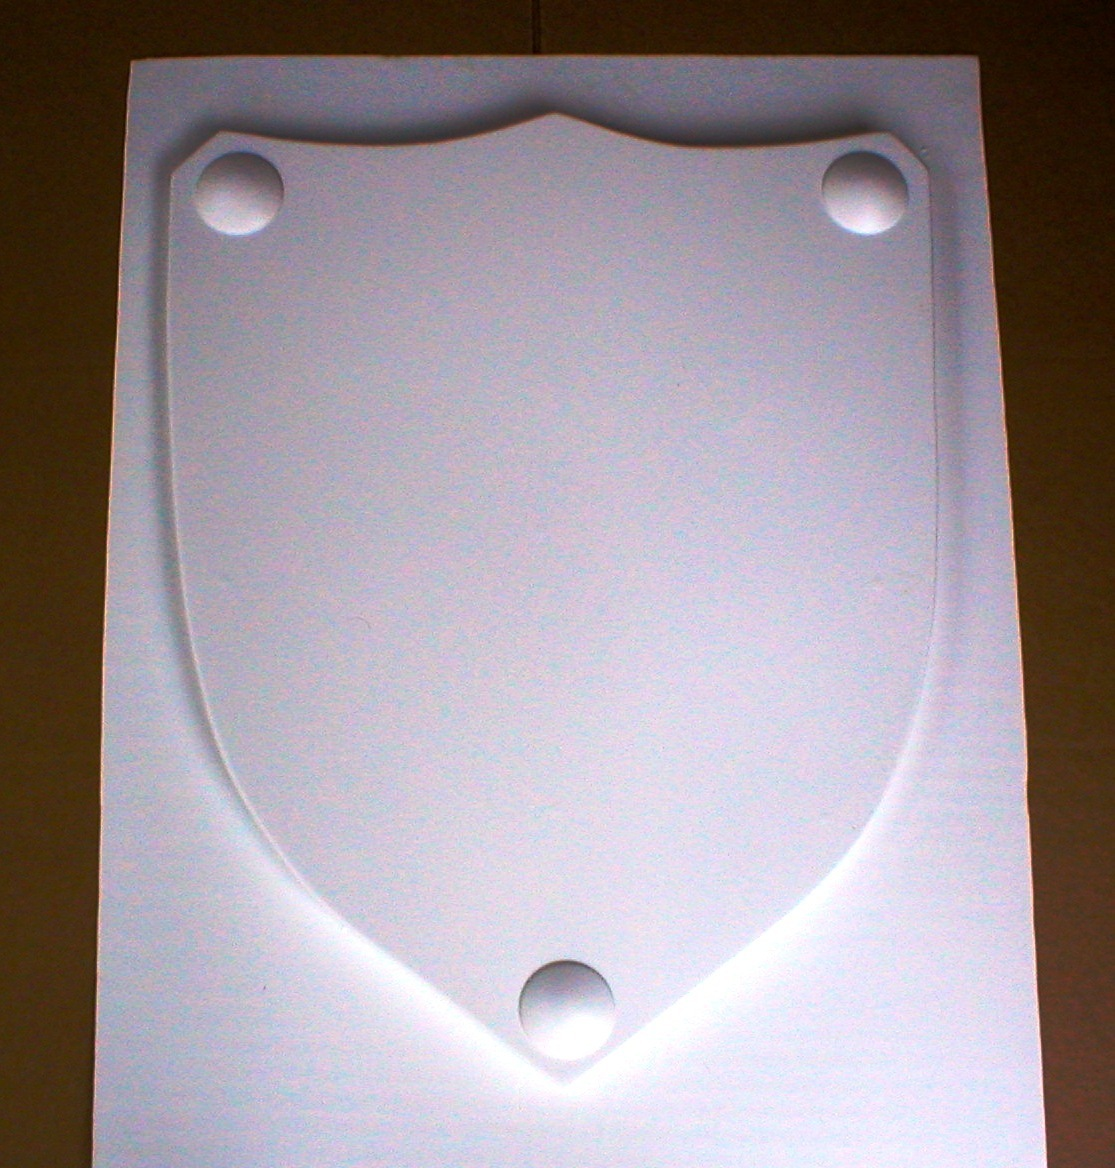 Mold 1502   24x30x2 shield with 3 clavos